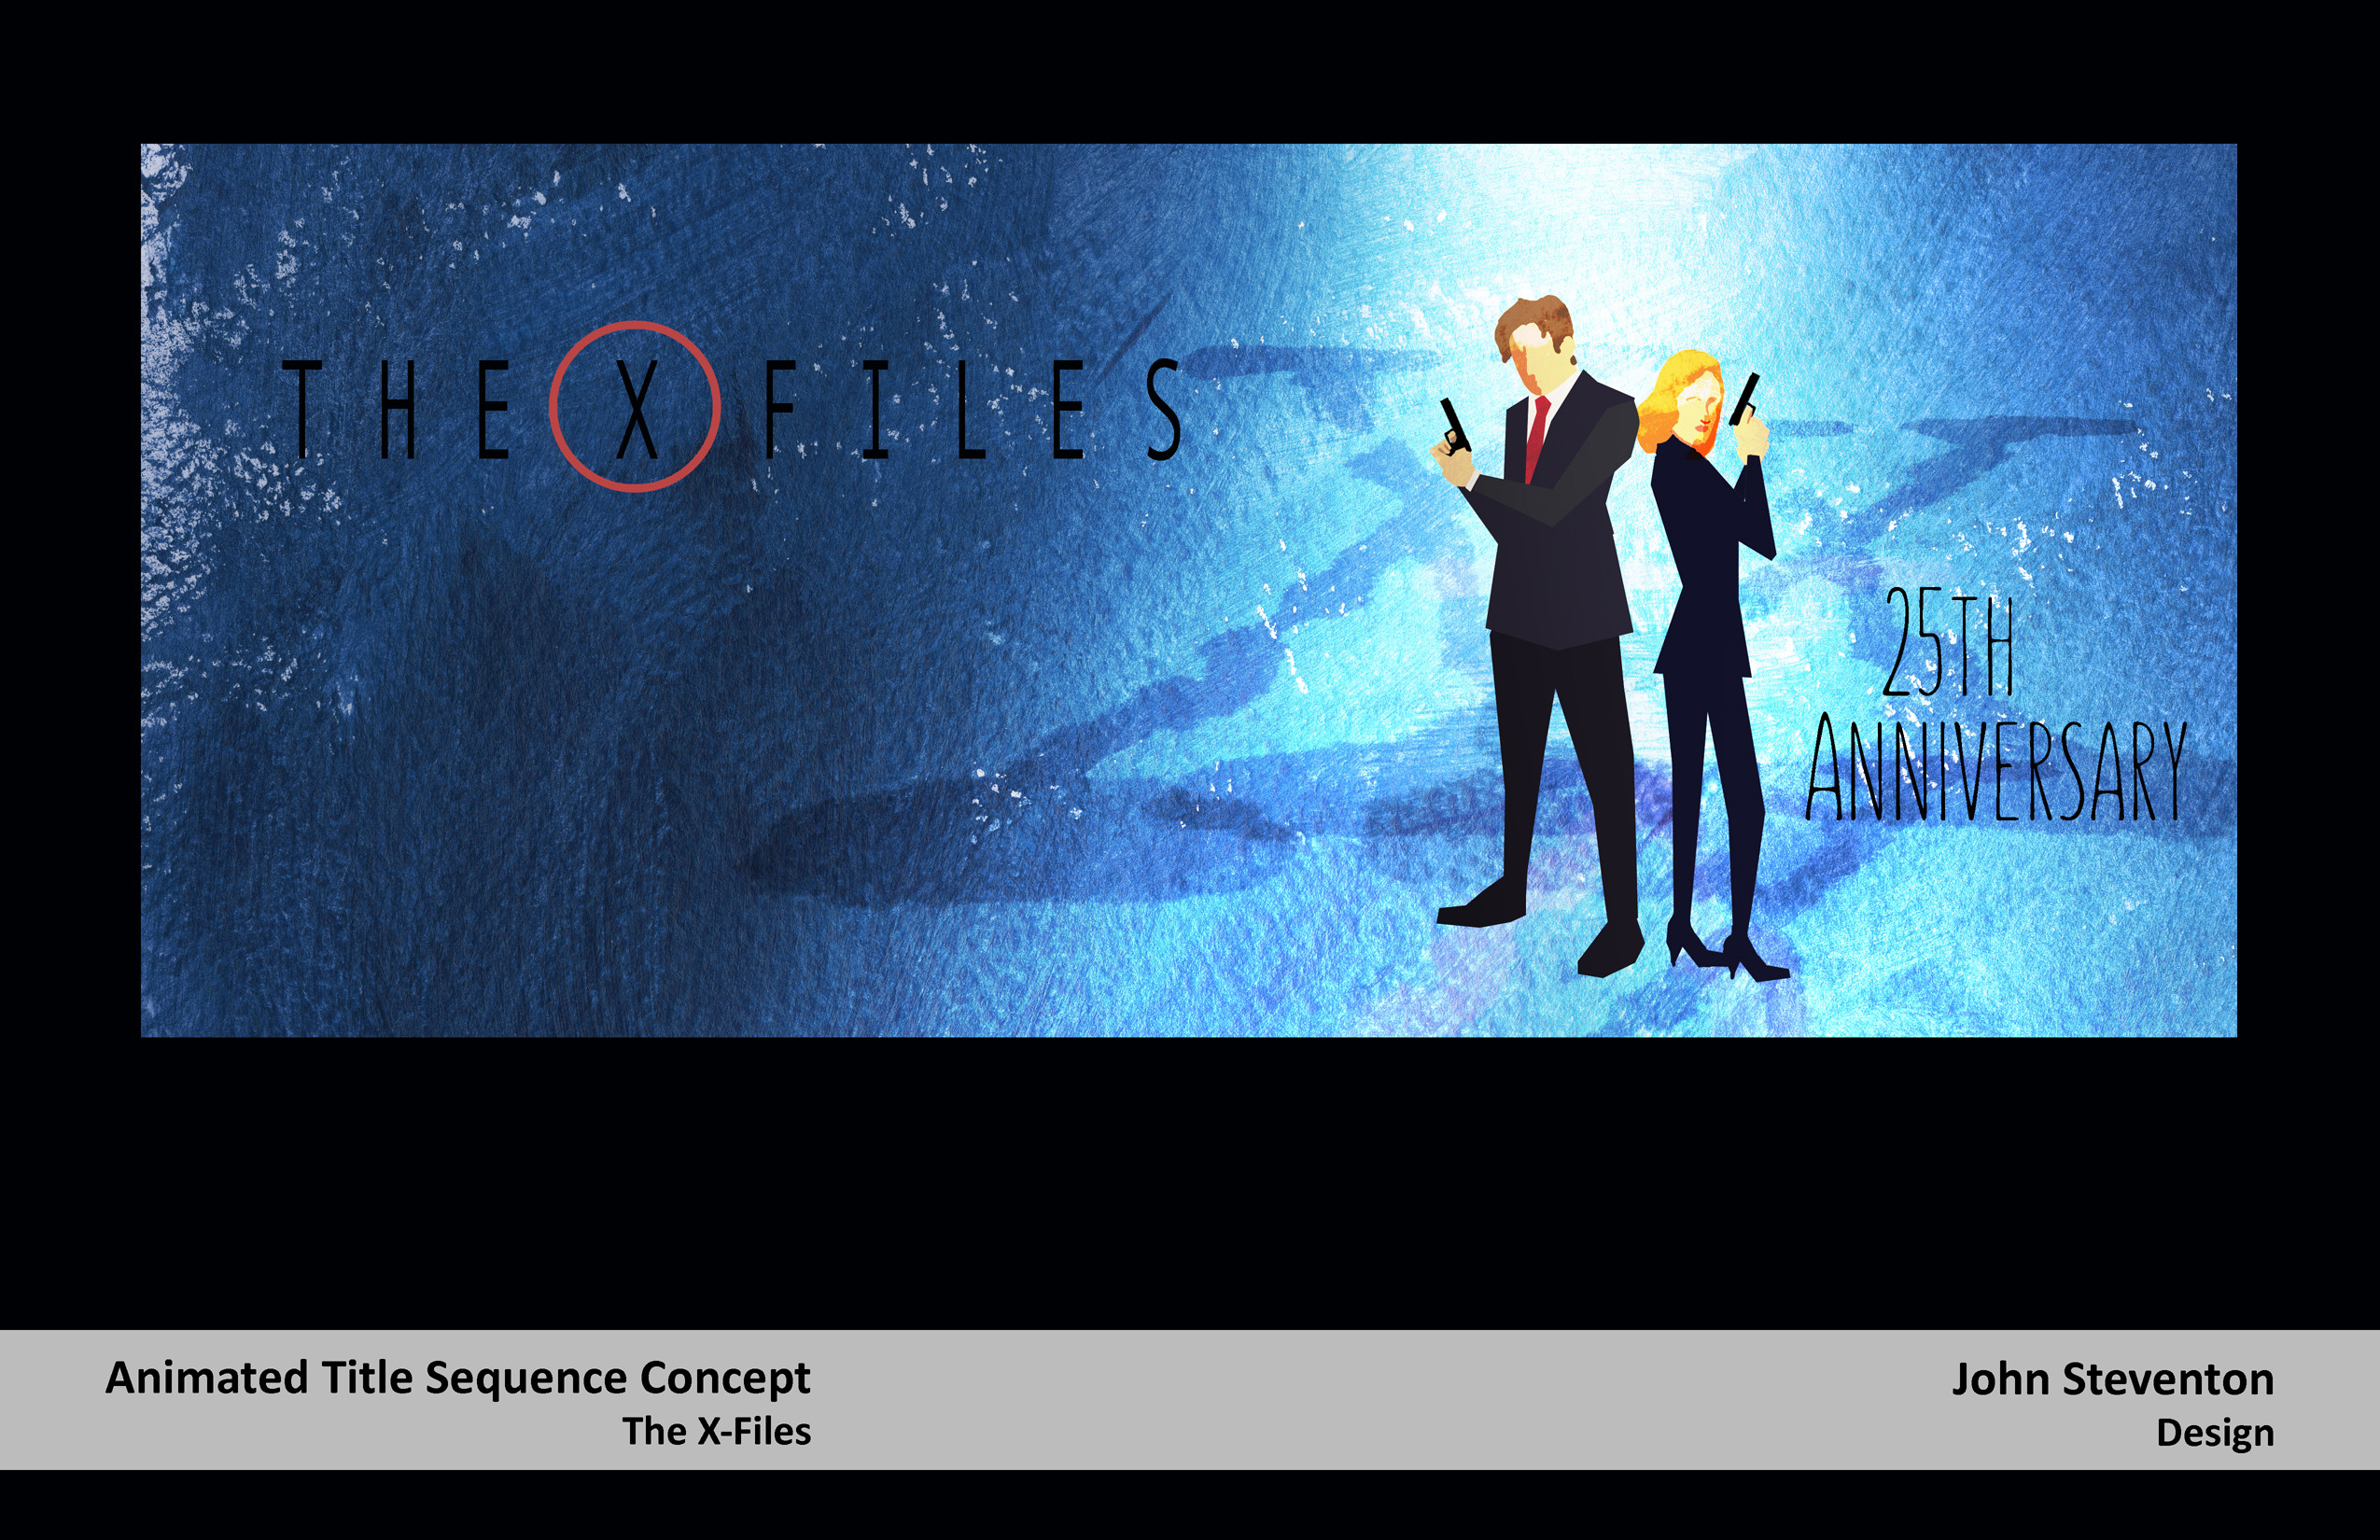 X-Files Anniversary Art: Animated Title Sequence concept